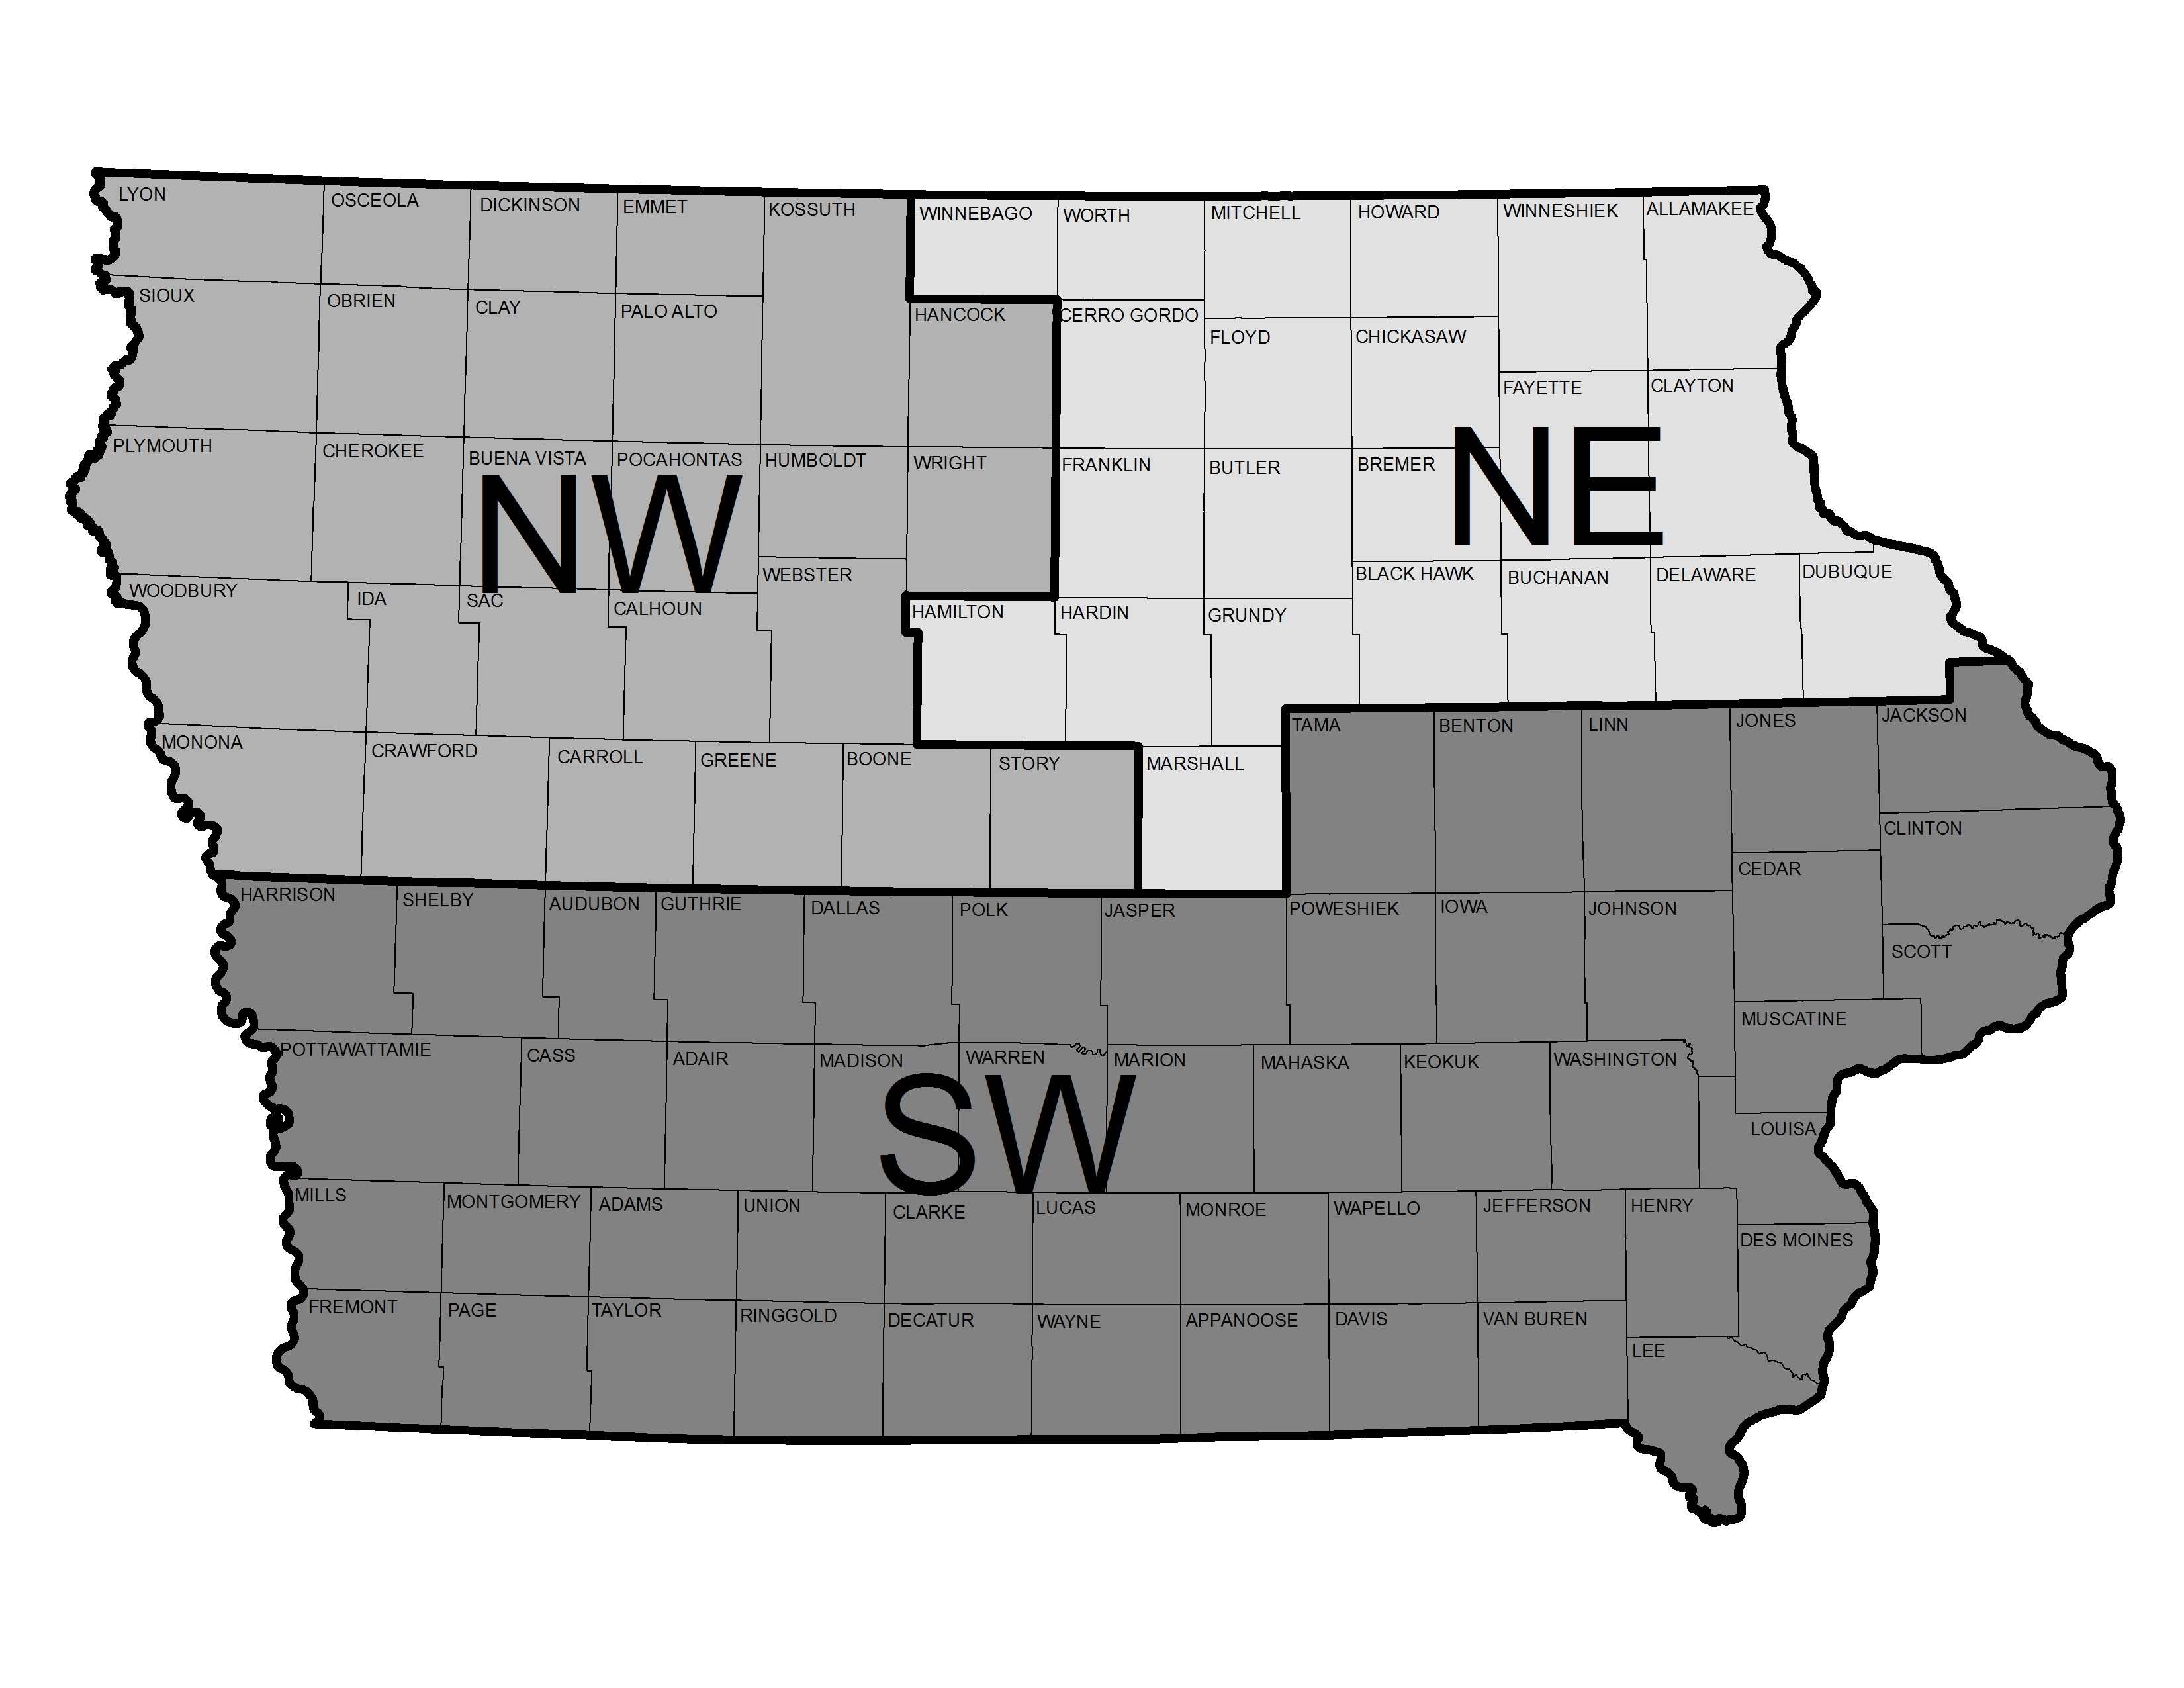 Map of Iowa Districts